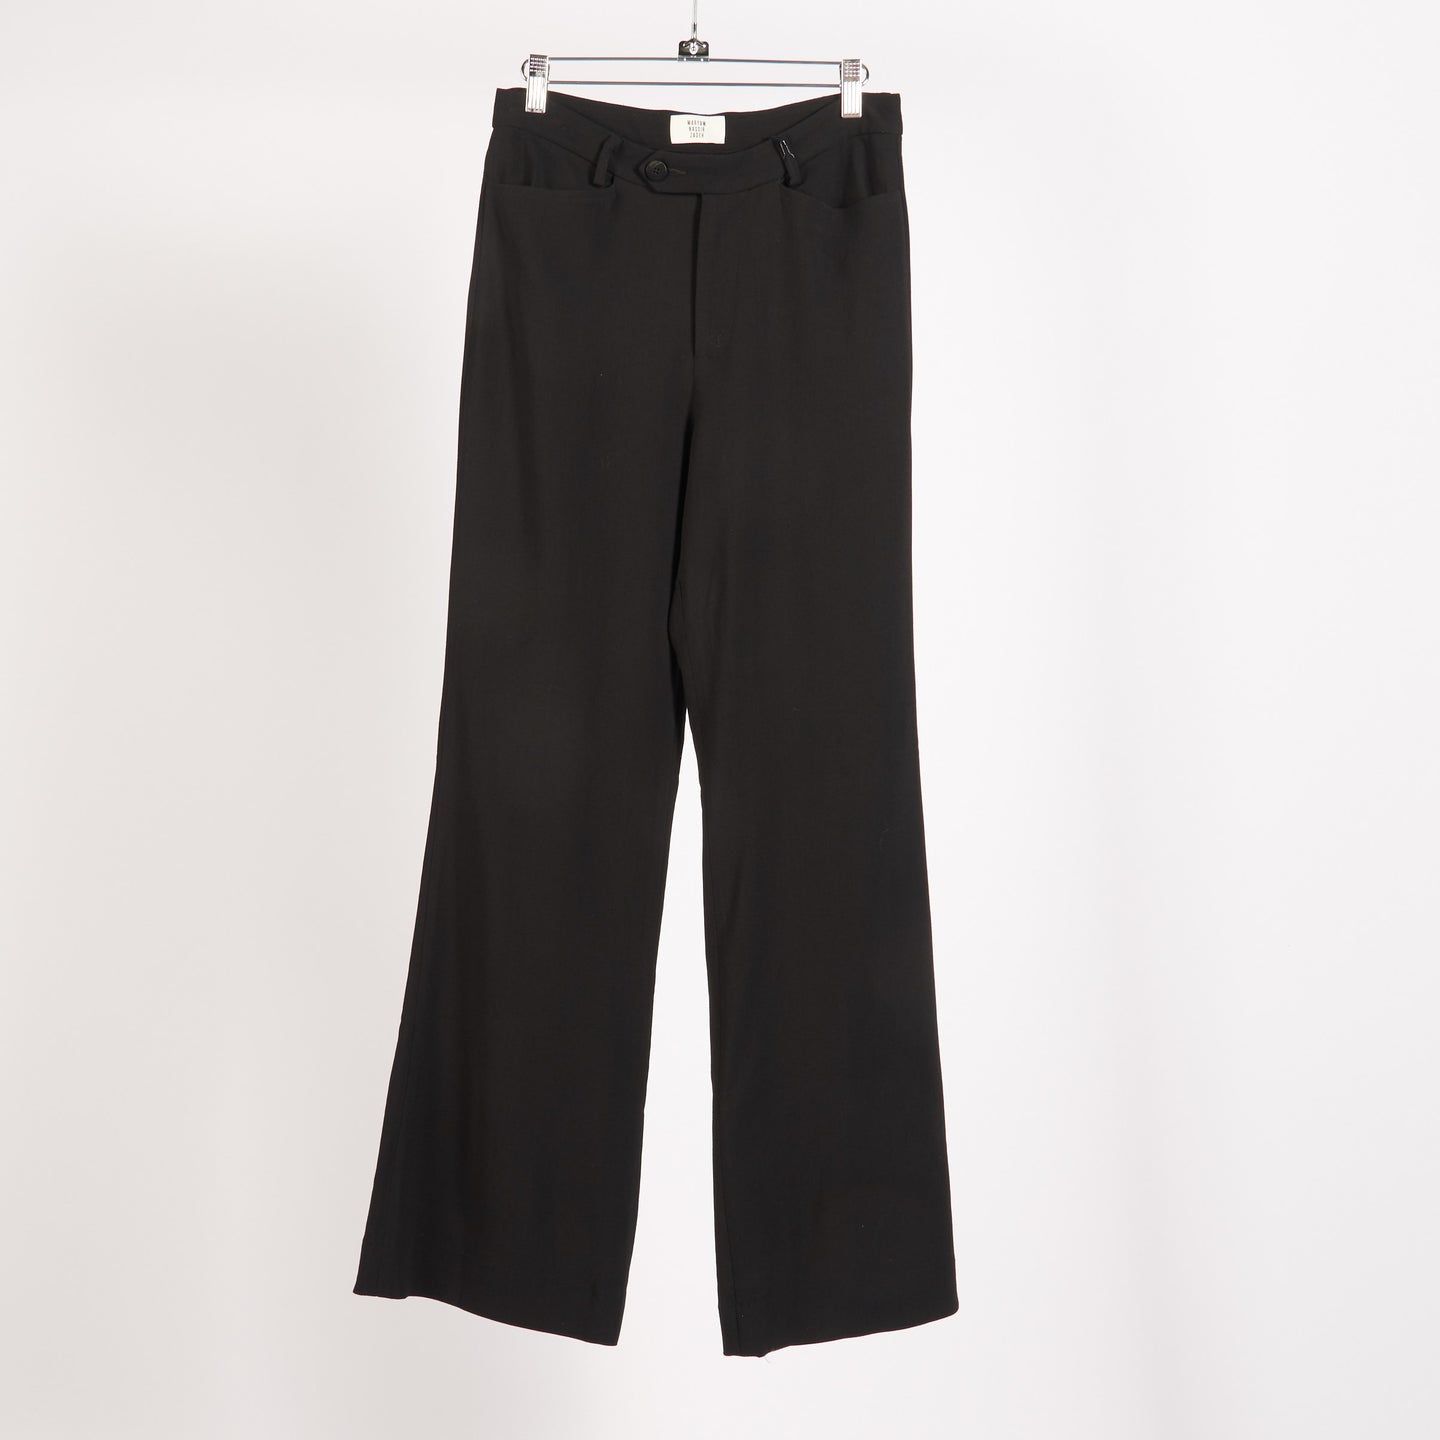 Black Clover Trousers (Size 6)